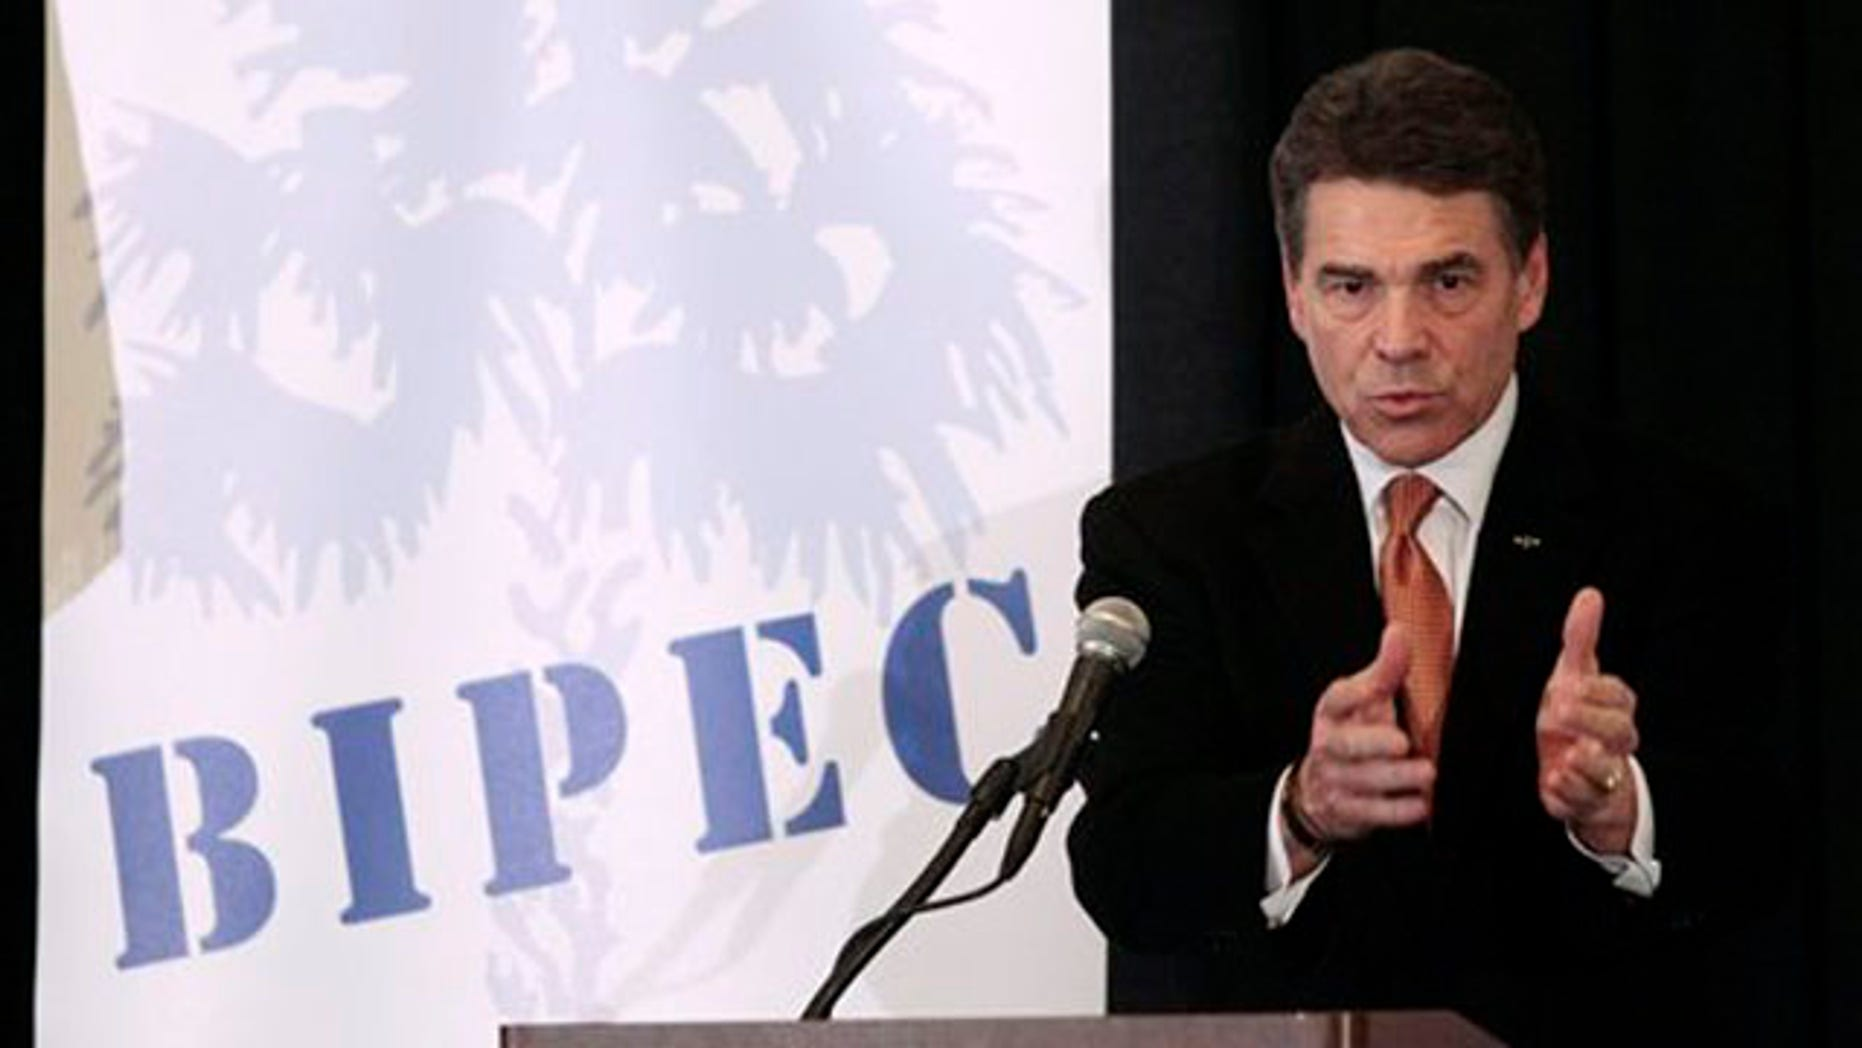 Jan. 17, 2012: Rick Perry speaks at a business and economic forum hosted by the South Carolina Chamber of Commerce in Columbia, S.C.